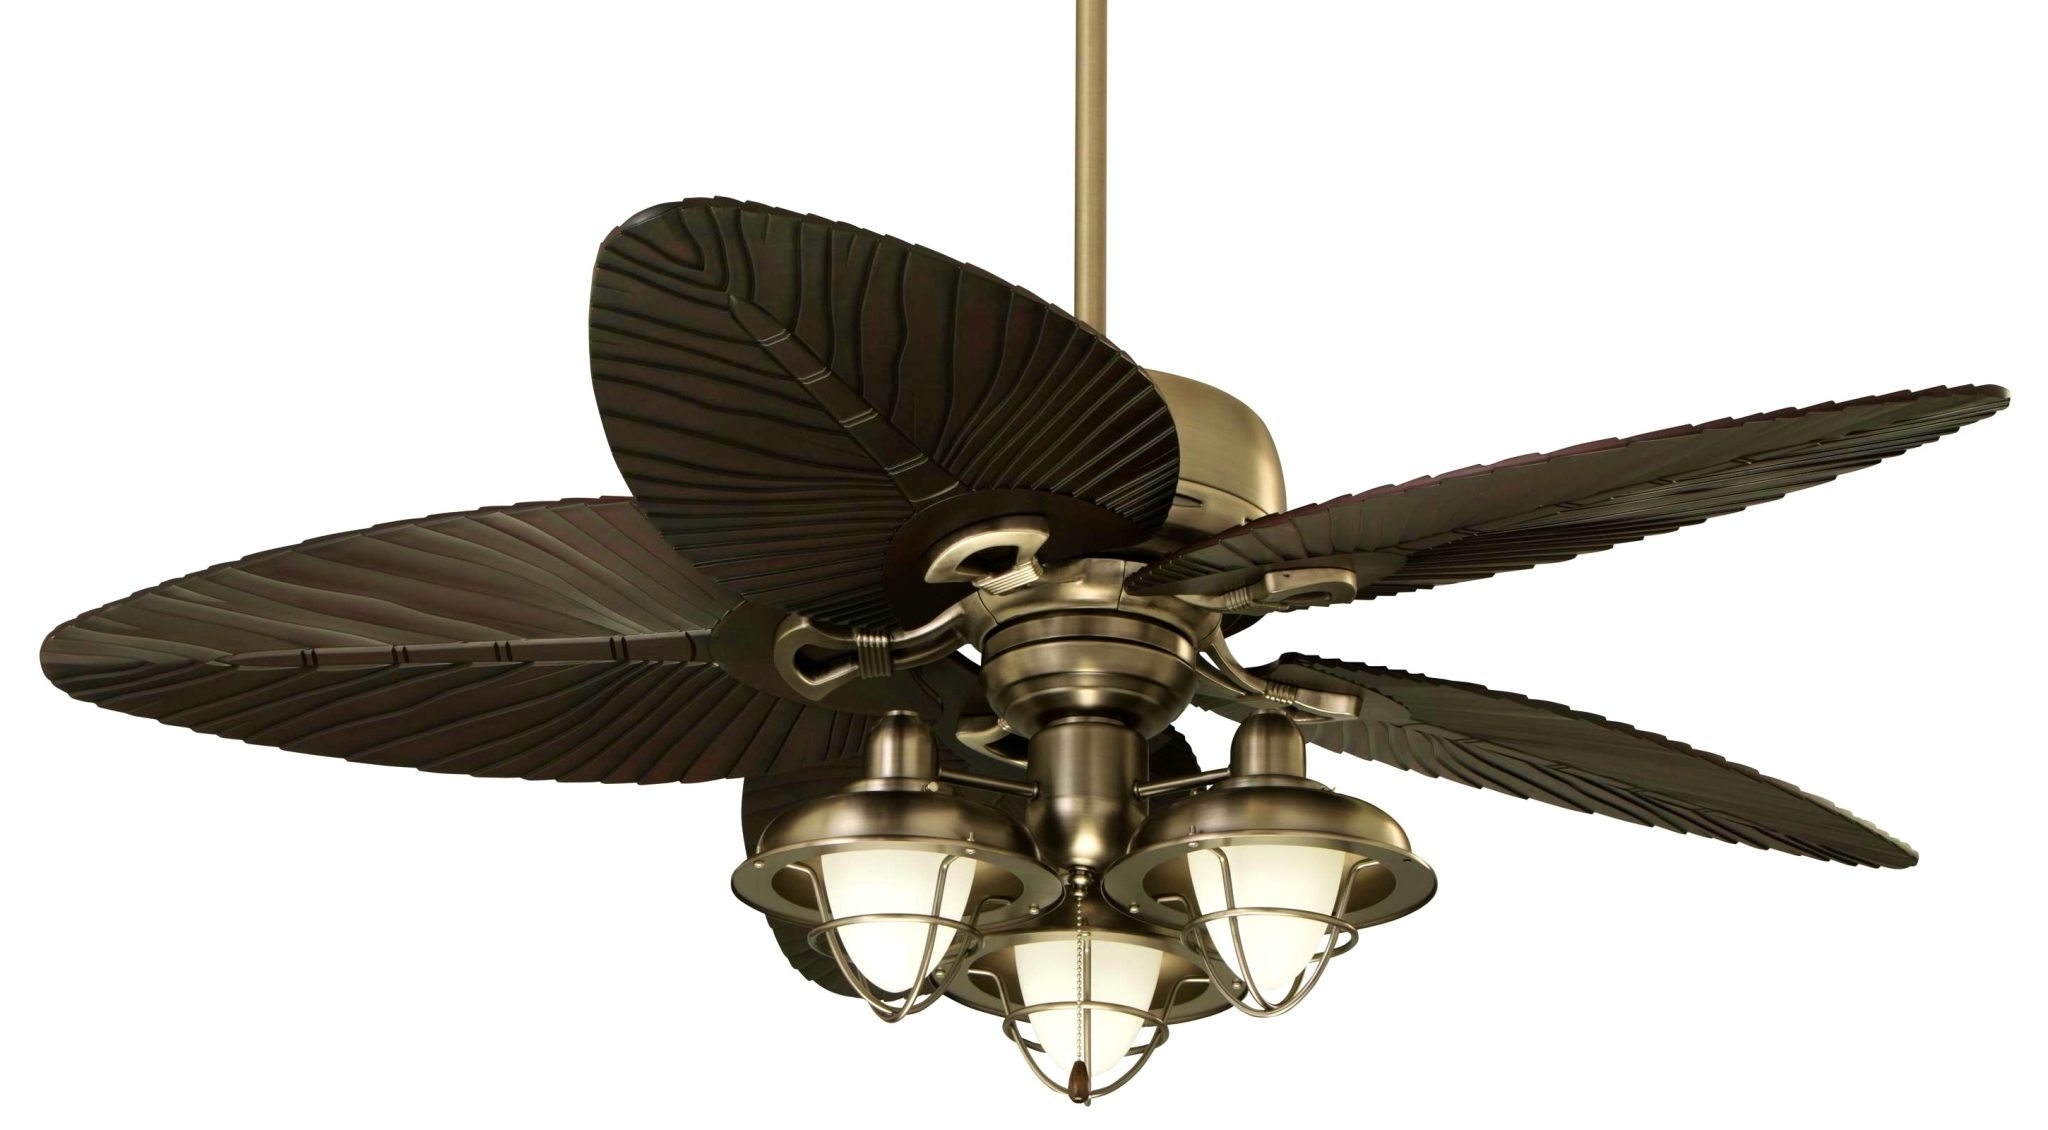 Famous Ceiling: Astounding Lowes Outdoor Ceiling Fans With Lights Home With Lowes Outdoor Ceiling Fans With Lights (View 16 of 20)